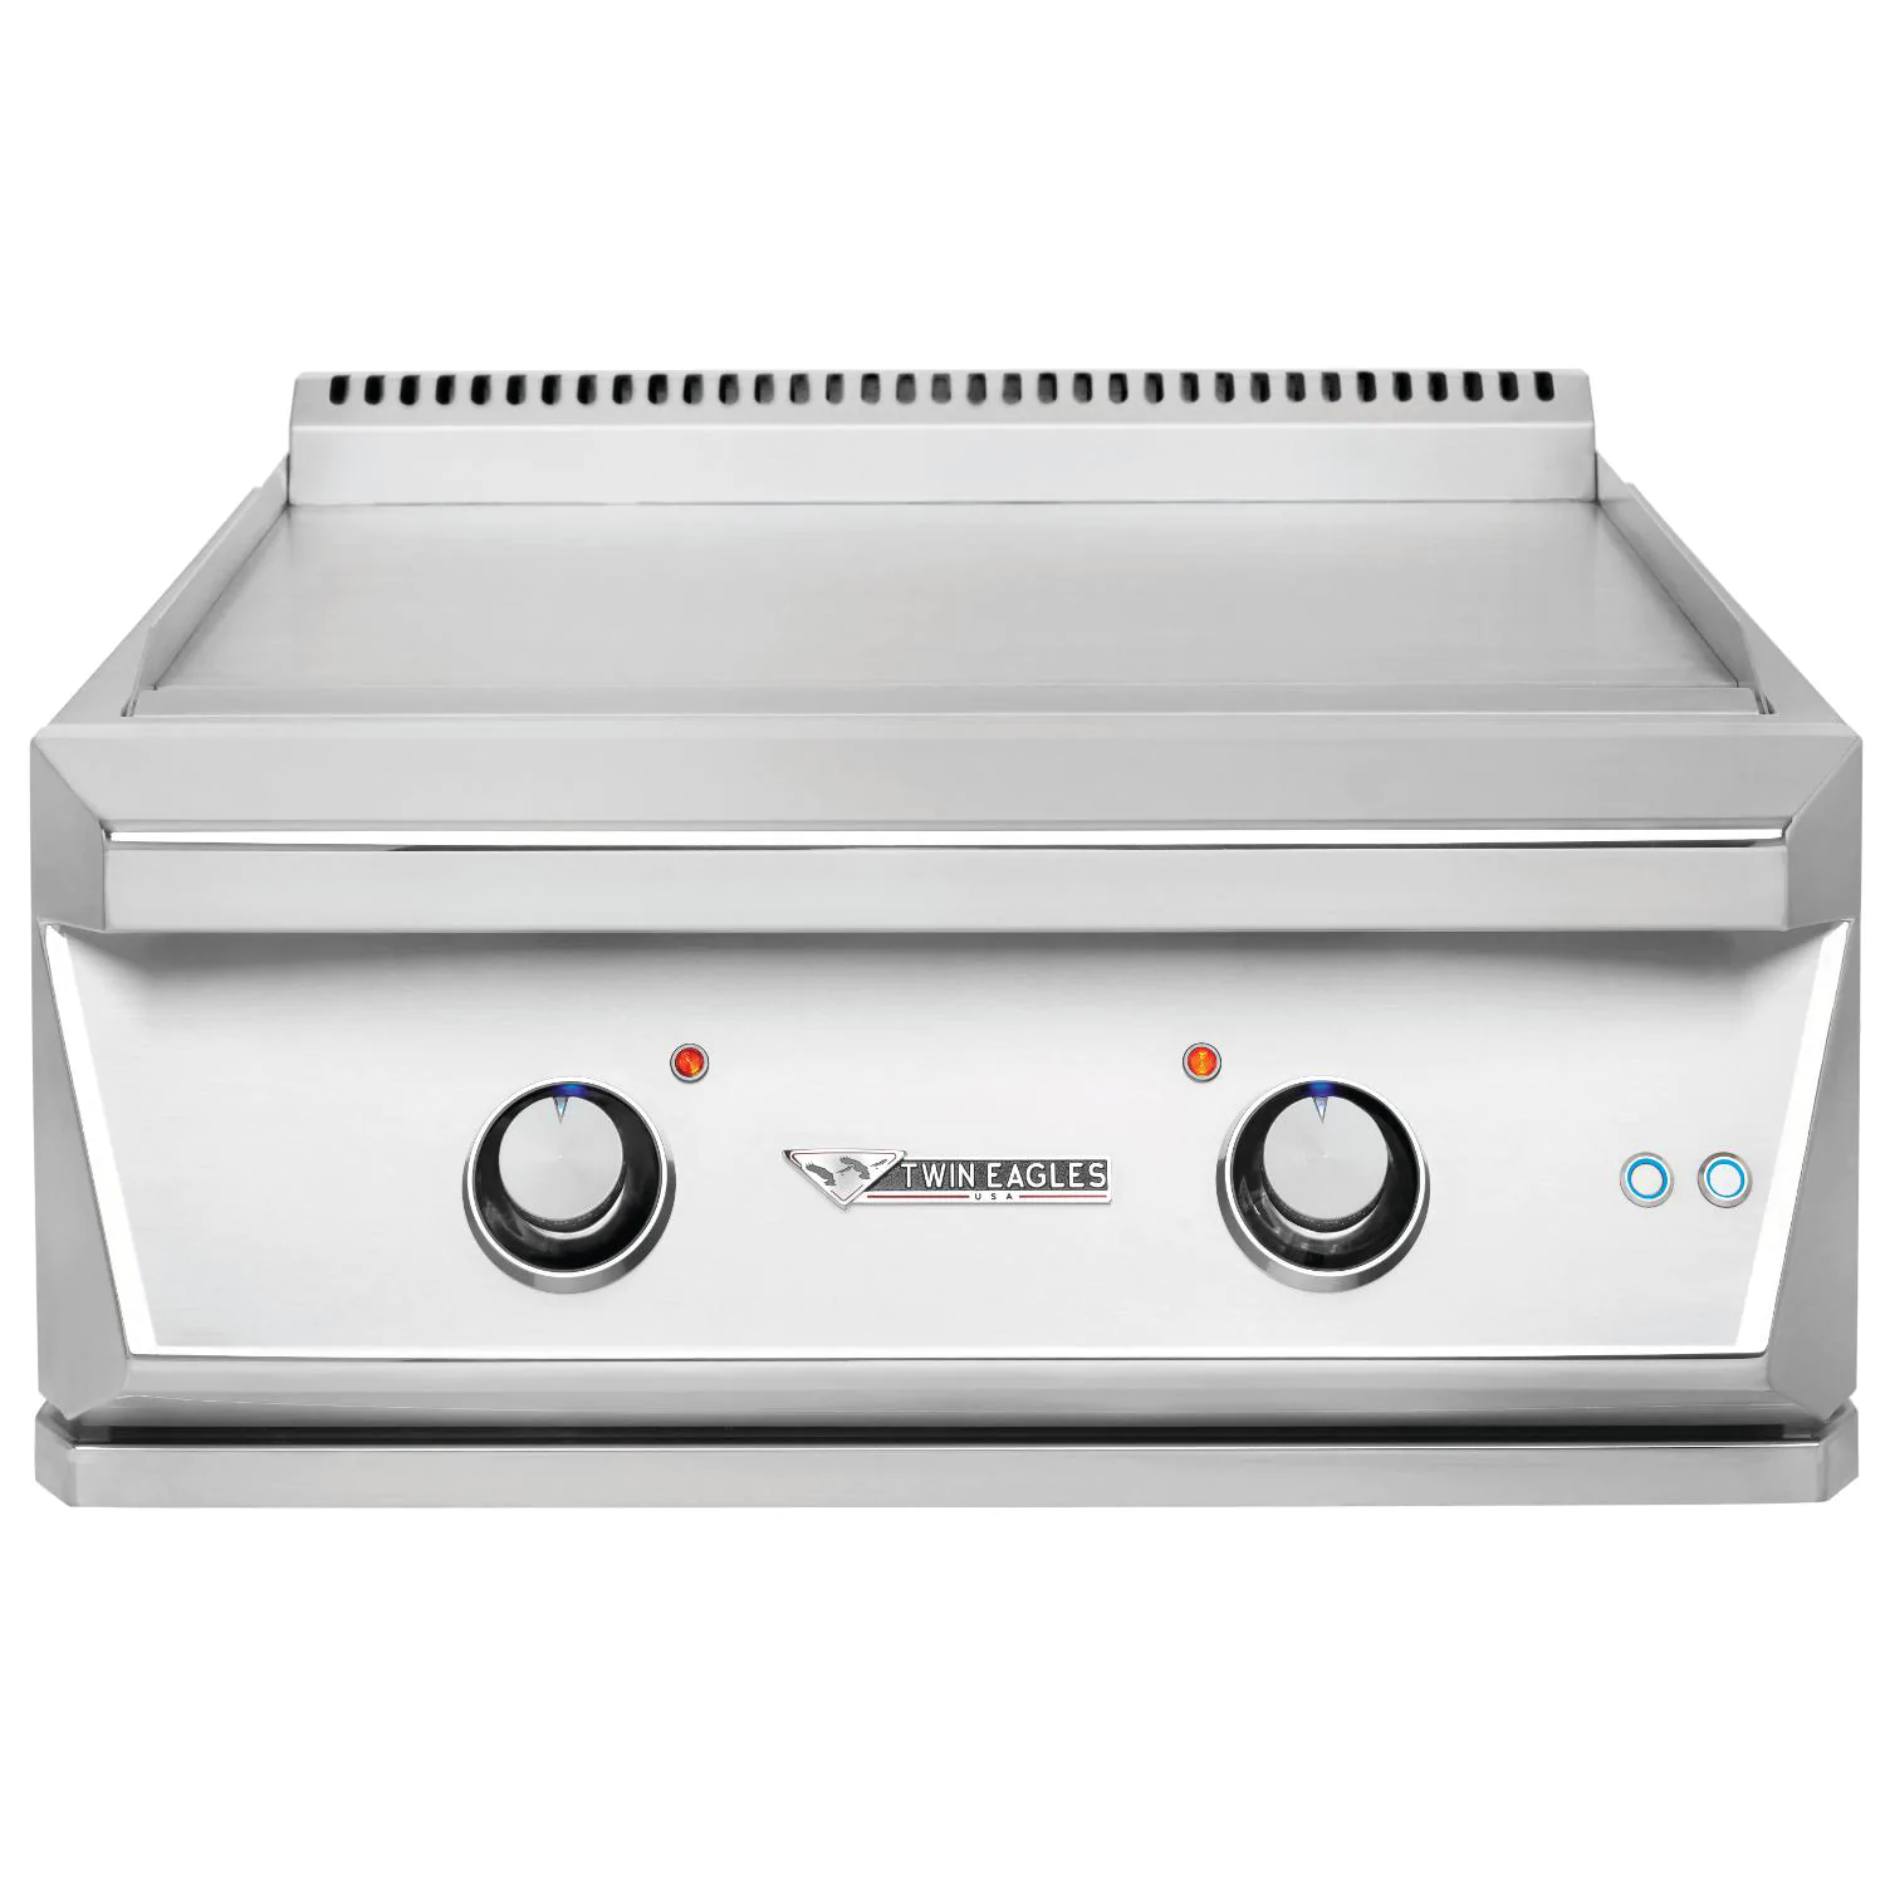 "Twin Eagles 30"" Teppanyaki - Flat Top Grill"